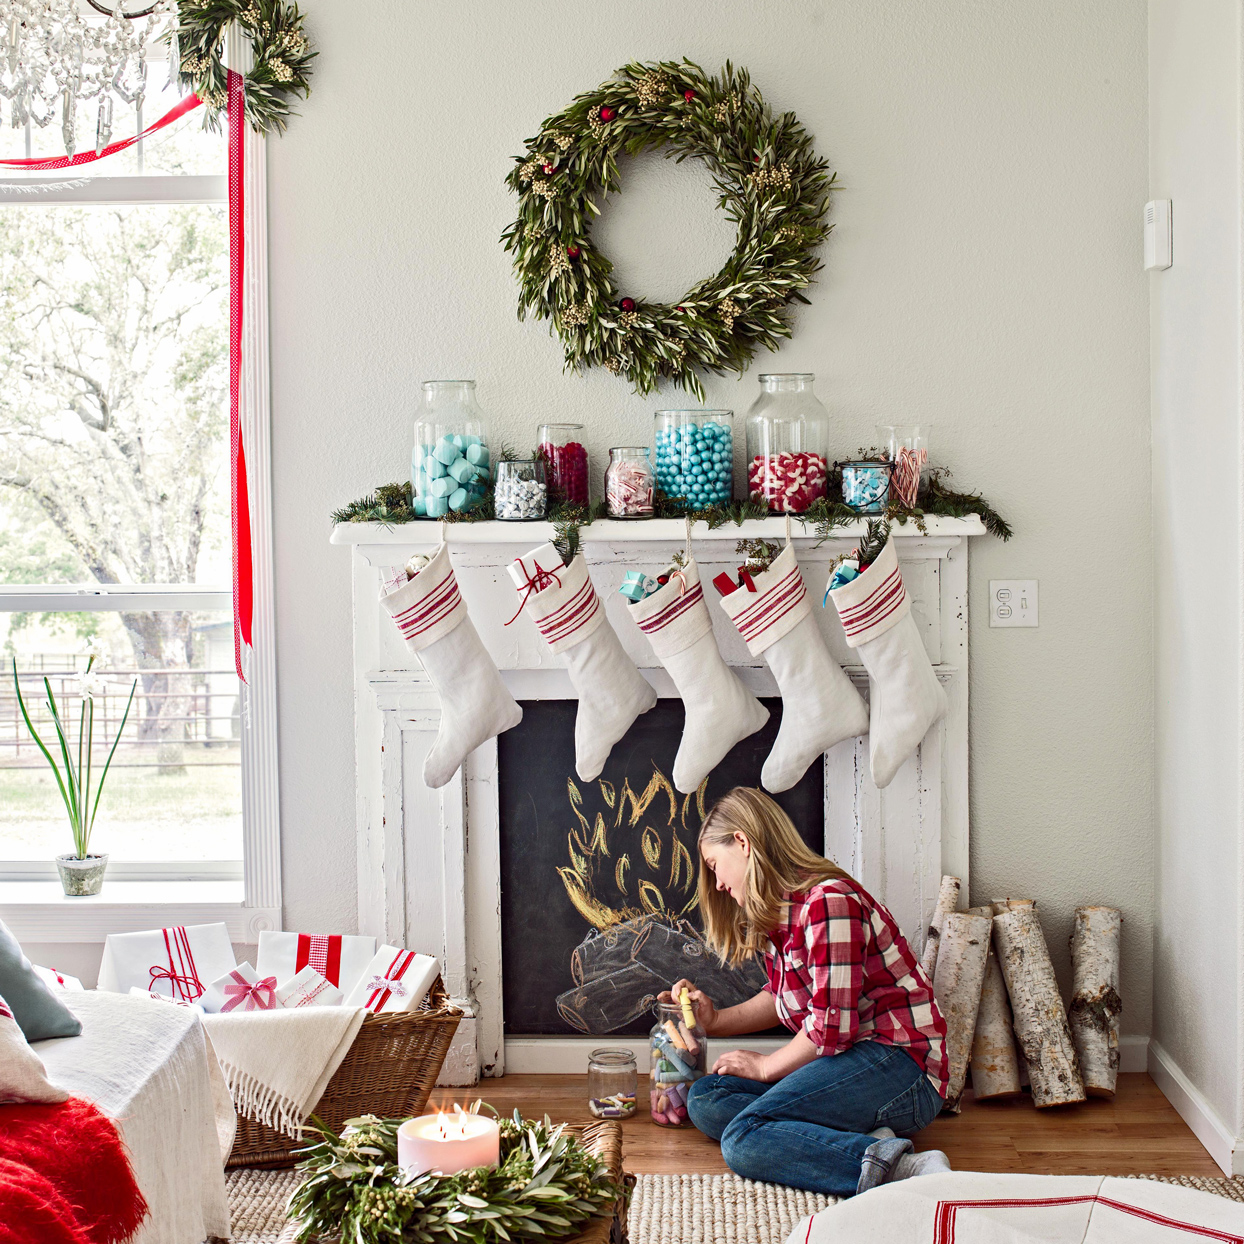 Christmas Garland for a Backdrop